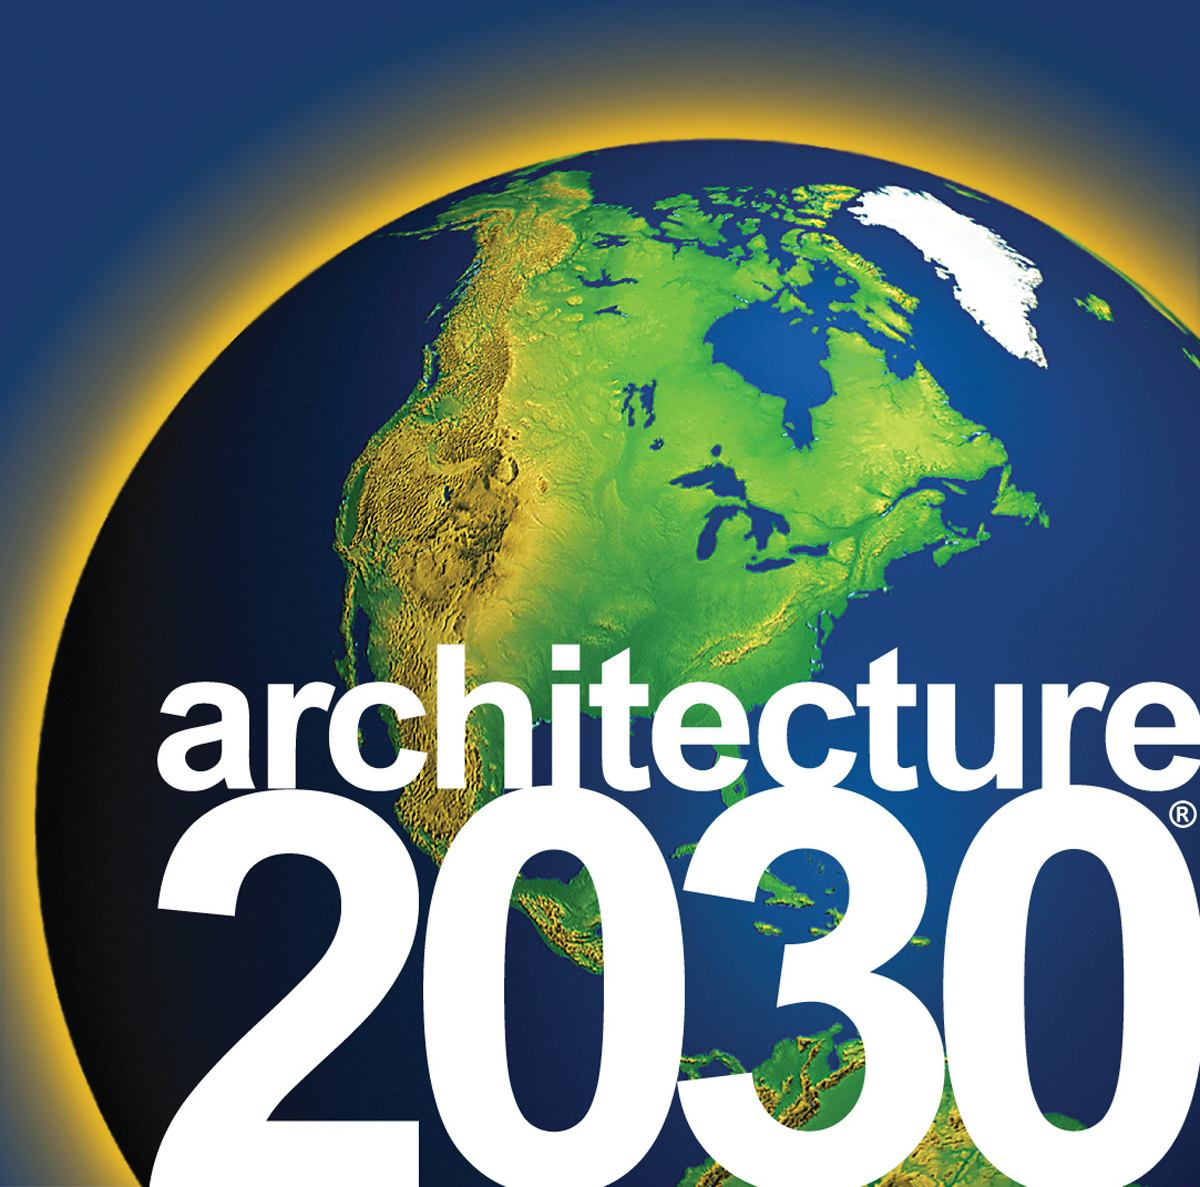 Architecture 2030 - A non-profit, non-partisan and independent organization, was established in response to the global-warming crisis by architect Edward Mazria in 2002. 2030's mission is to rapidly transform the US and global Building Sector from the major contributor of greenhouse gas emissions to a central part of the solution to the global-warming crisis.